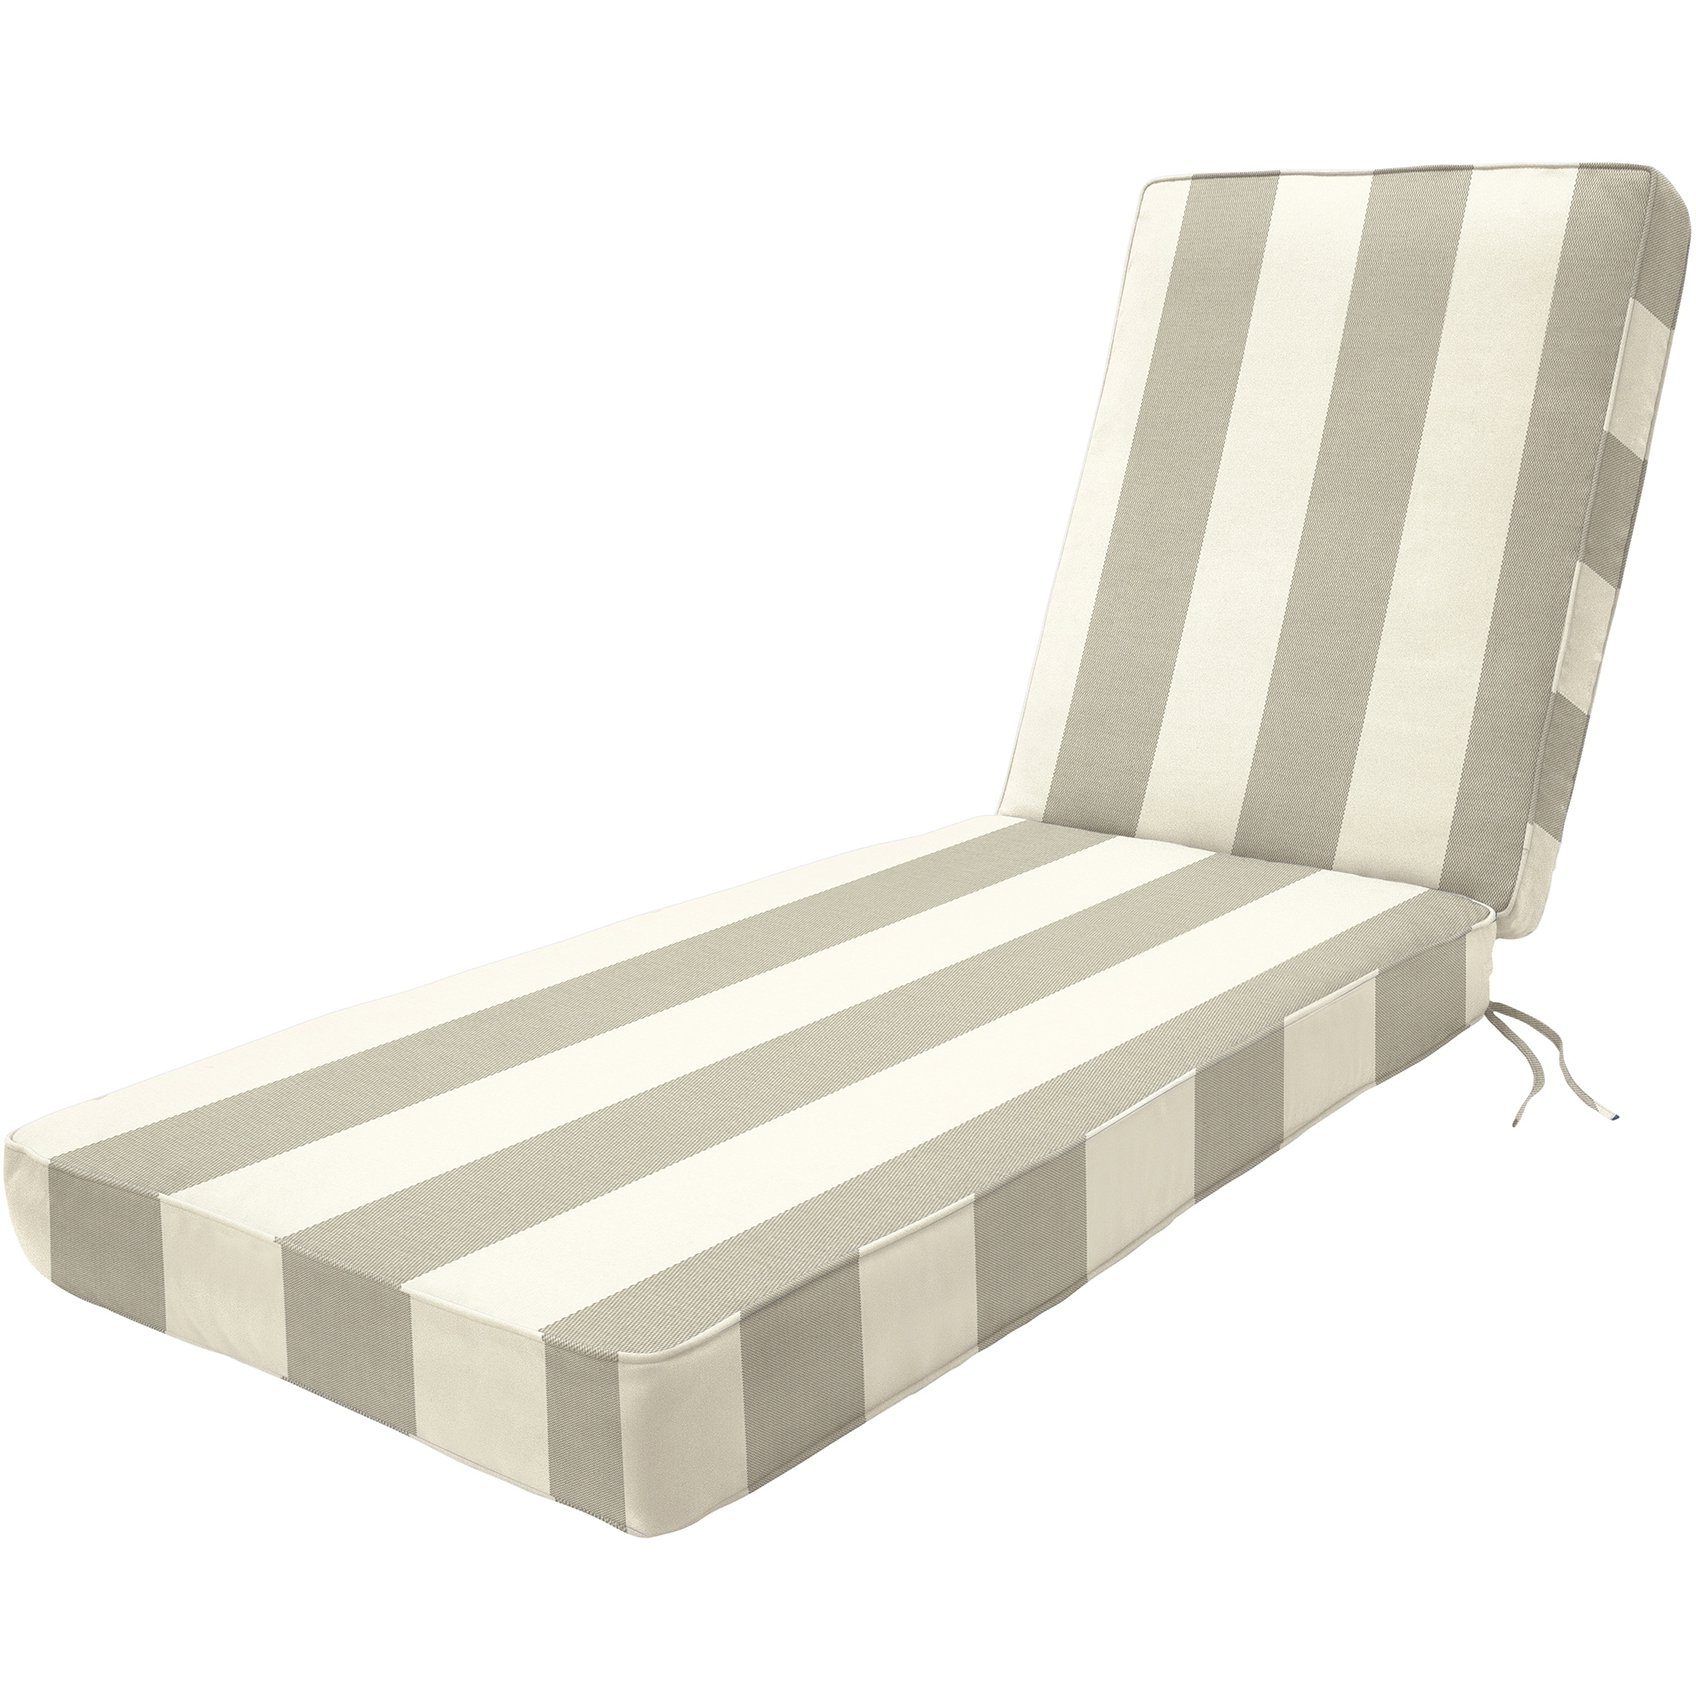 Sunbrella Chaise Lounges For Most Recently Released Outdoor Chaise Lounge Cushions Sunbrella (View 13 of 15)